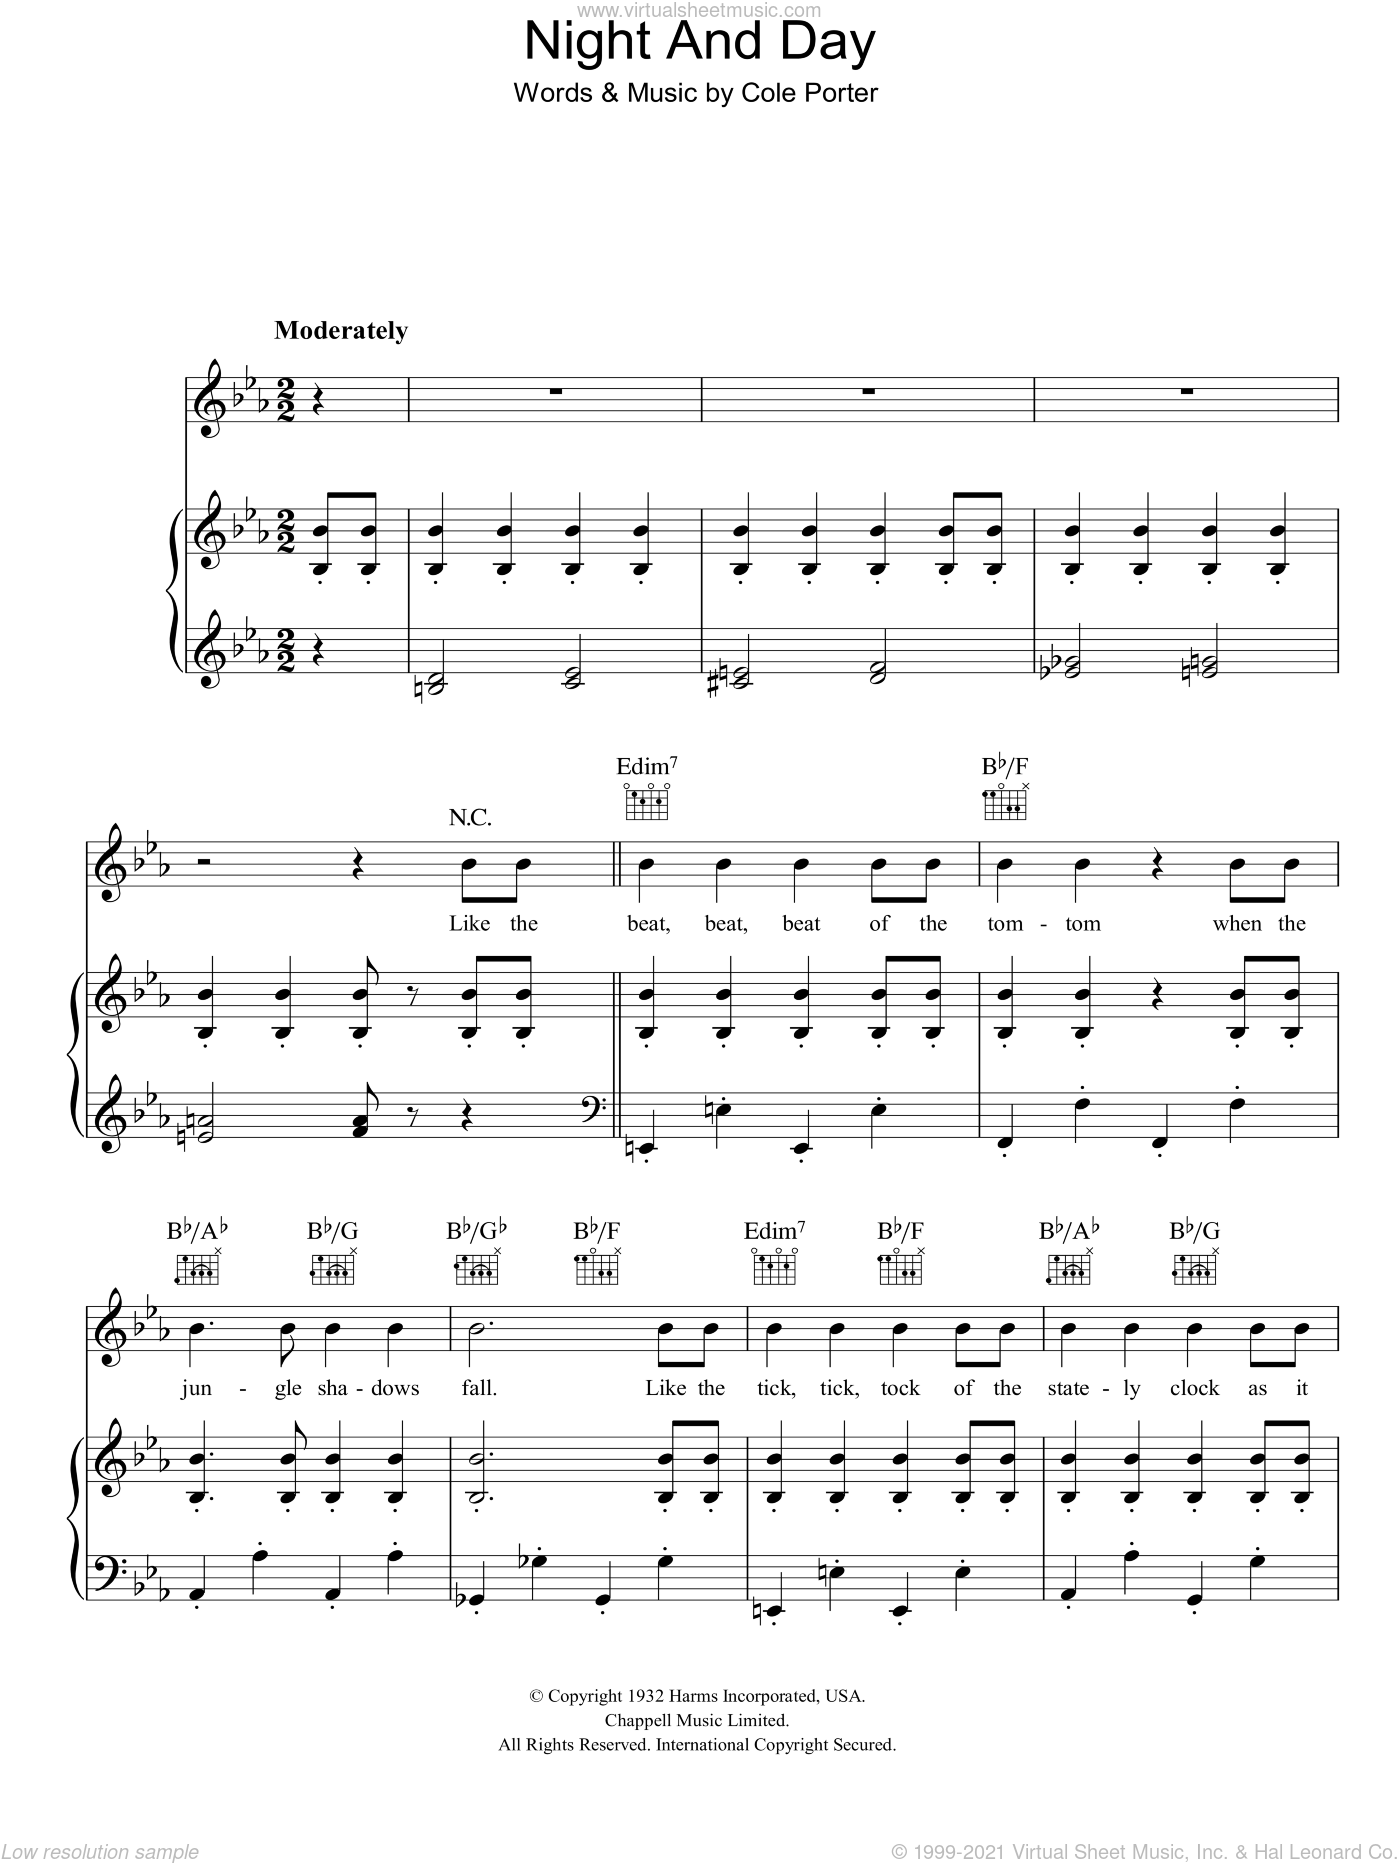 Night And Day sheet music for voice, piano or guitar by Cole Porter. Score Image Preview.